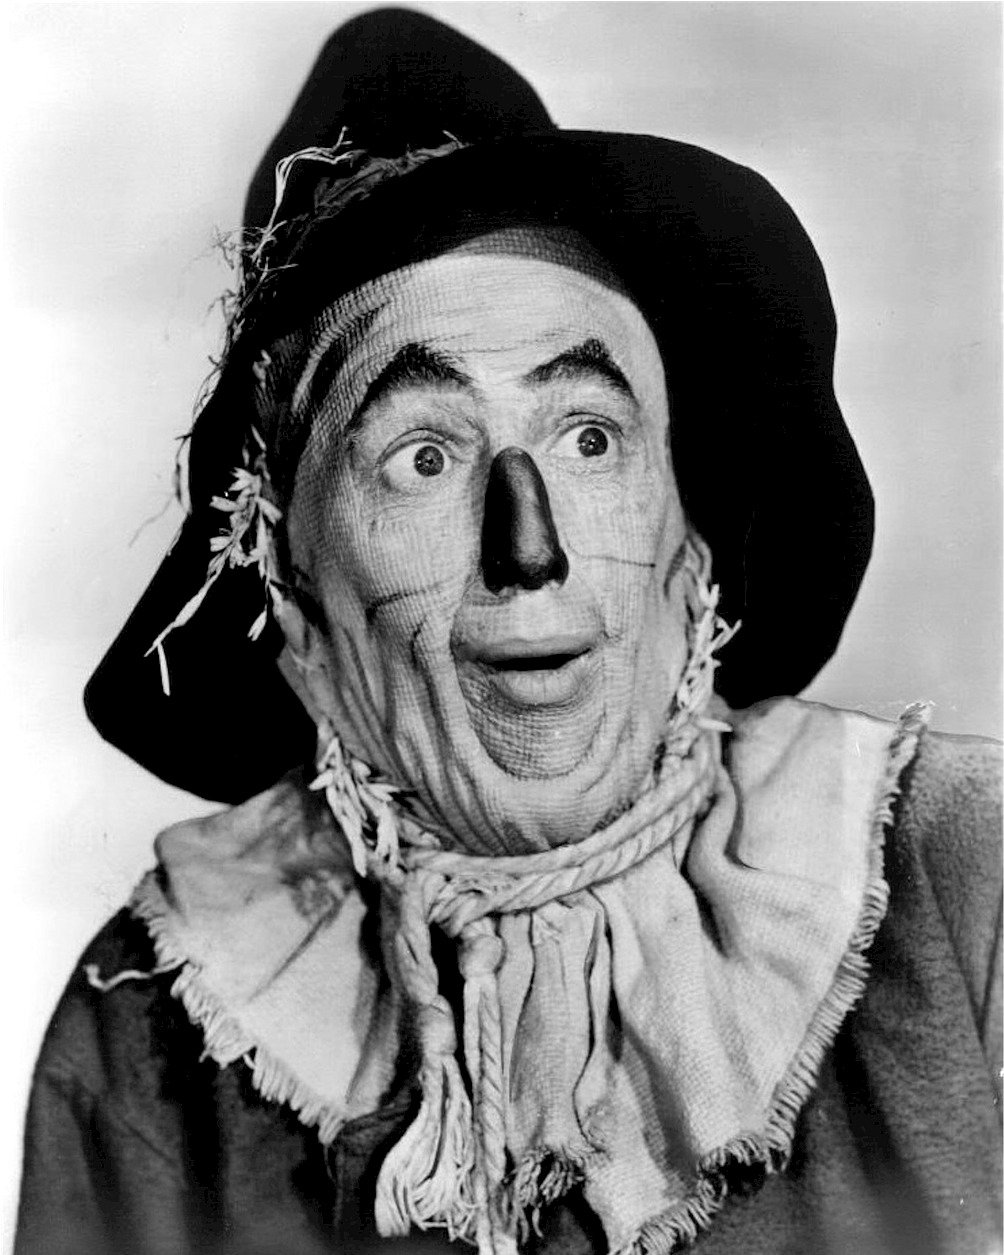 """RAY BOLGER AS """"THE SCARECROW"""" IN """"THE WIZARD OF OZ"""" - 8X10 PHOTO (EE-179)"""